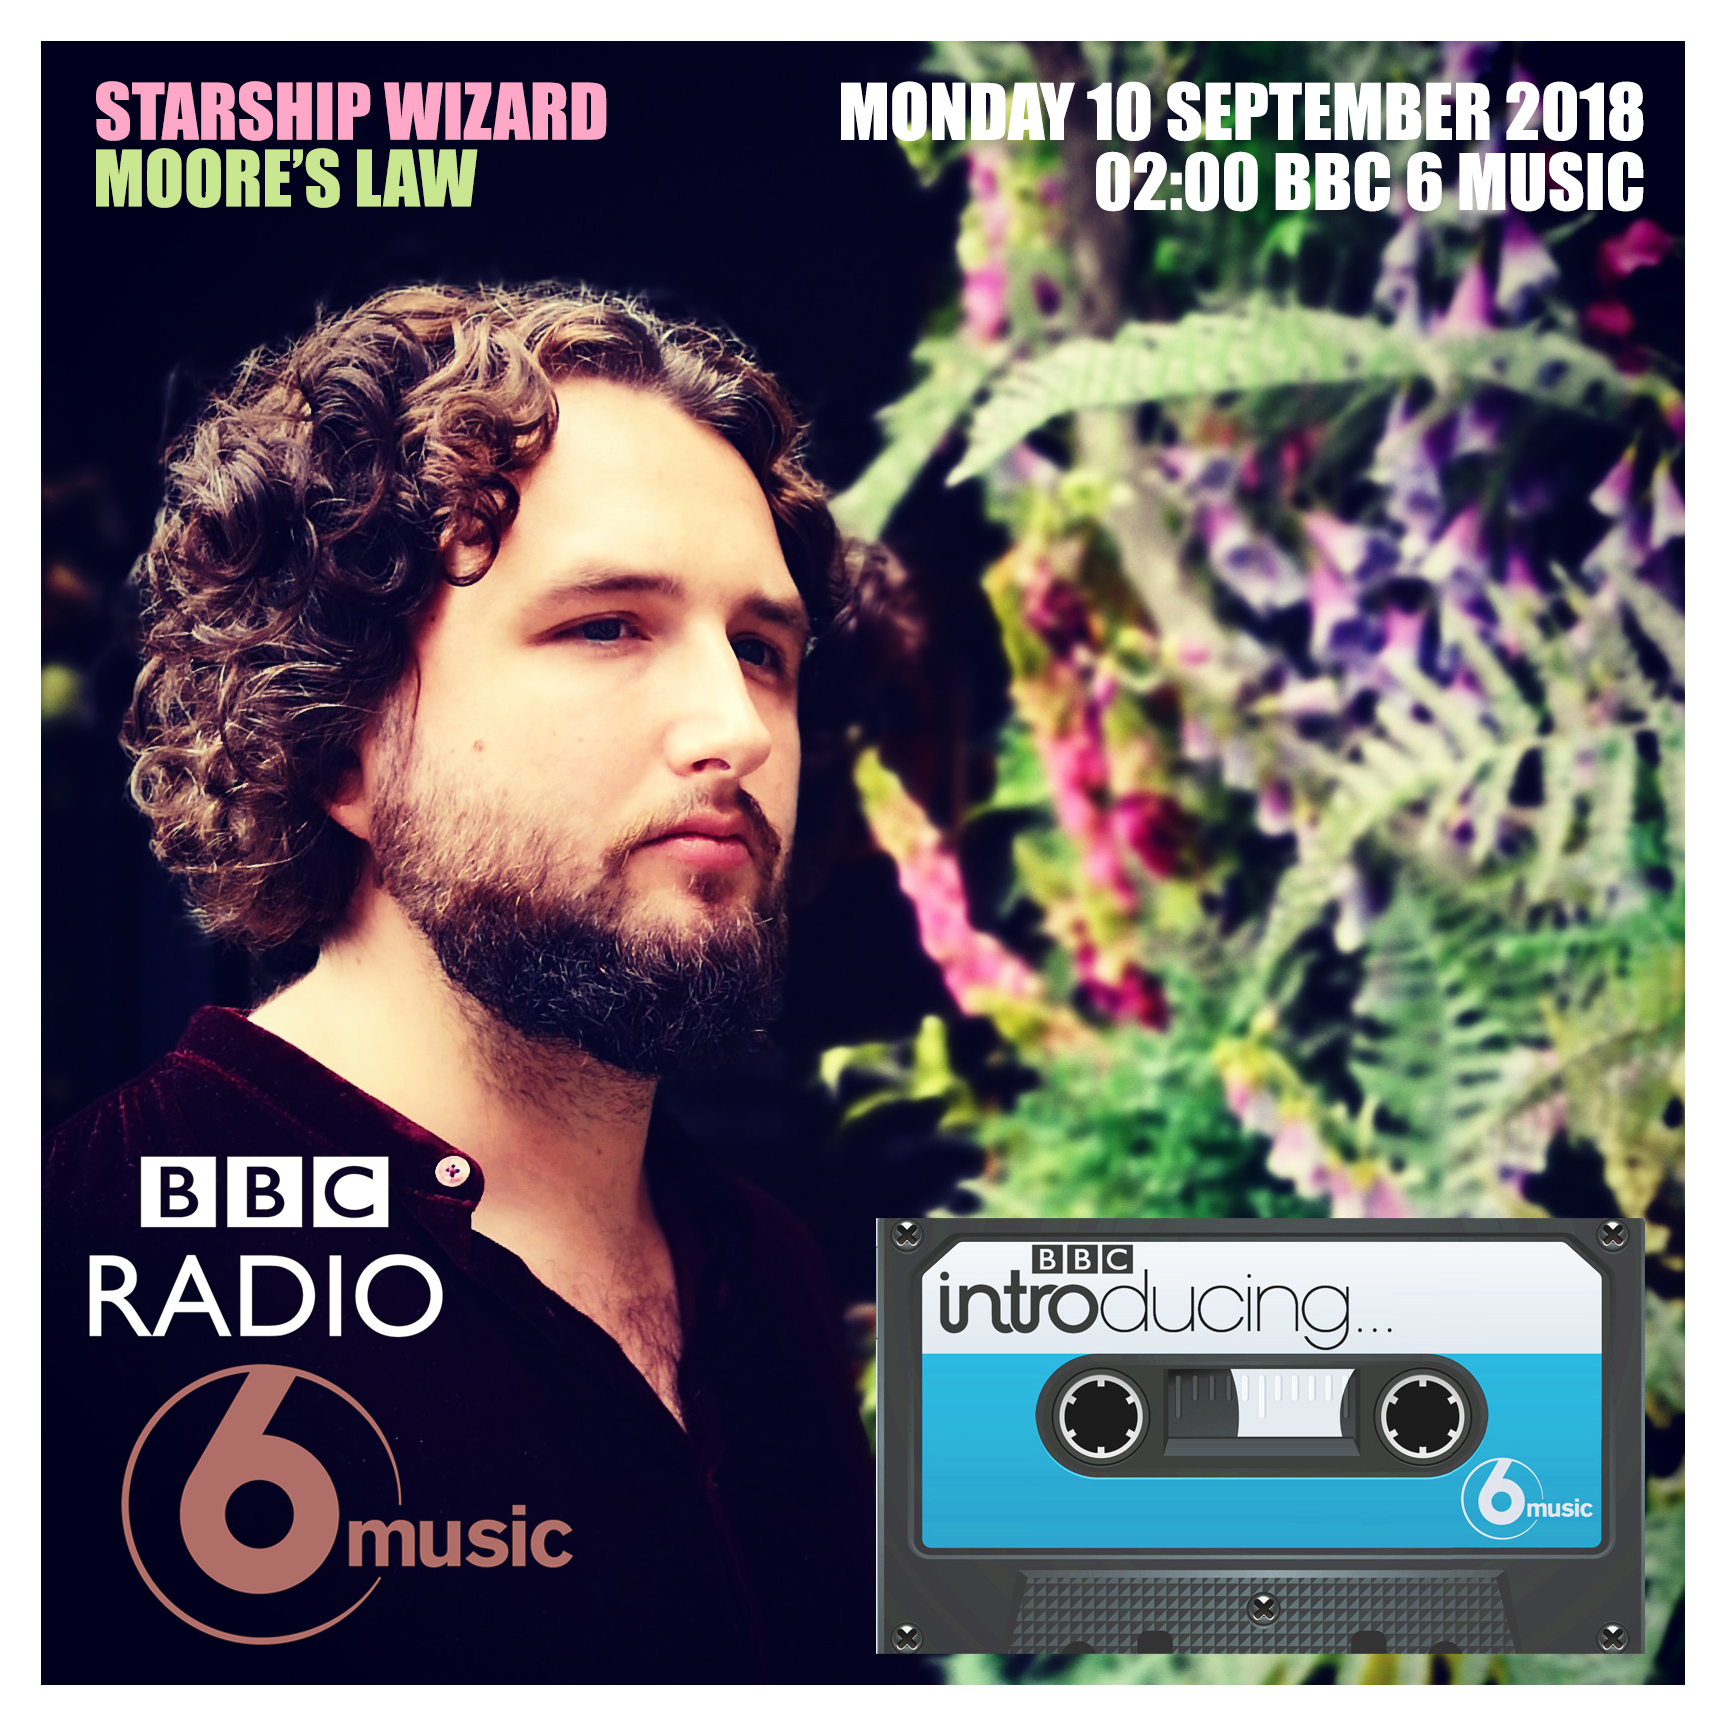 Starship Wizard BBC 6 MUSIC